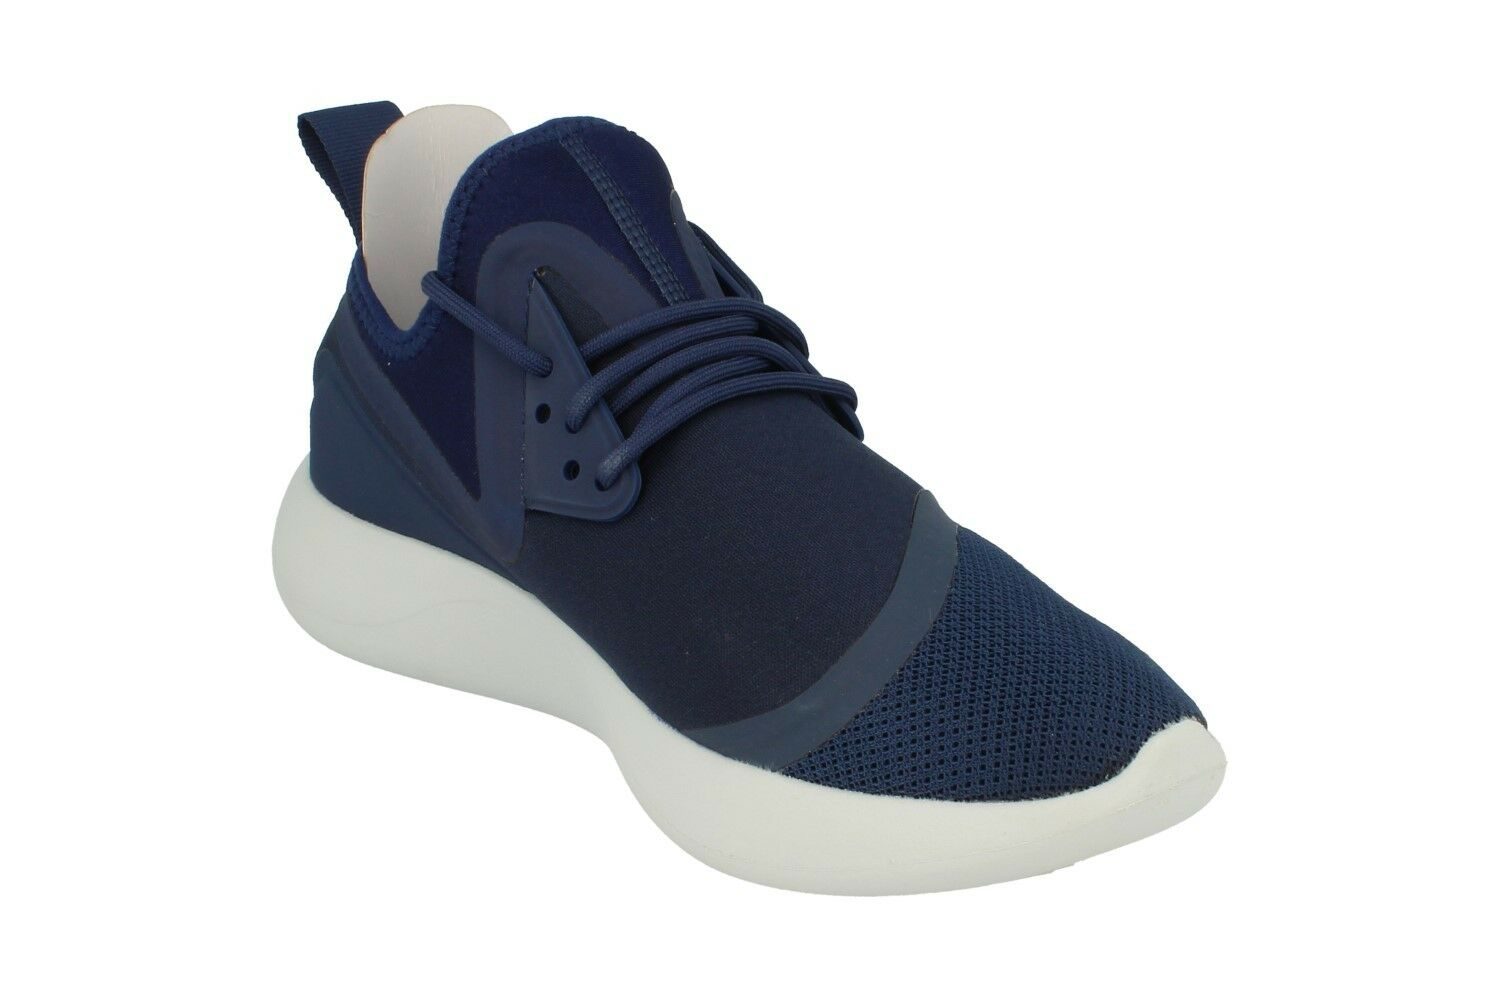 Nike Lunarcharge Essential Homme Homme Homme Running Baskets 923619 Baskets Chaussures 401 51a5fc